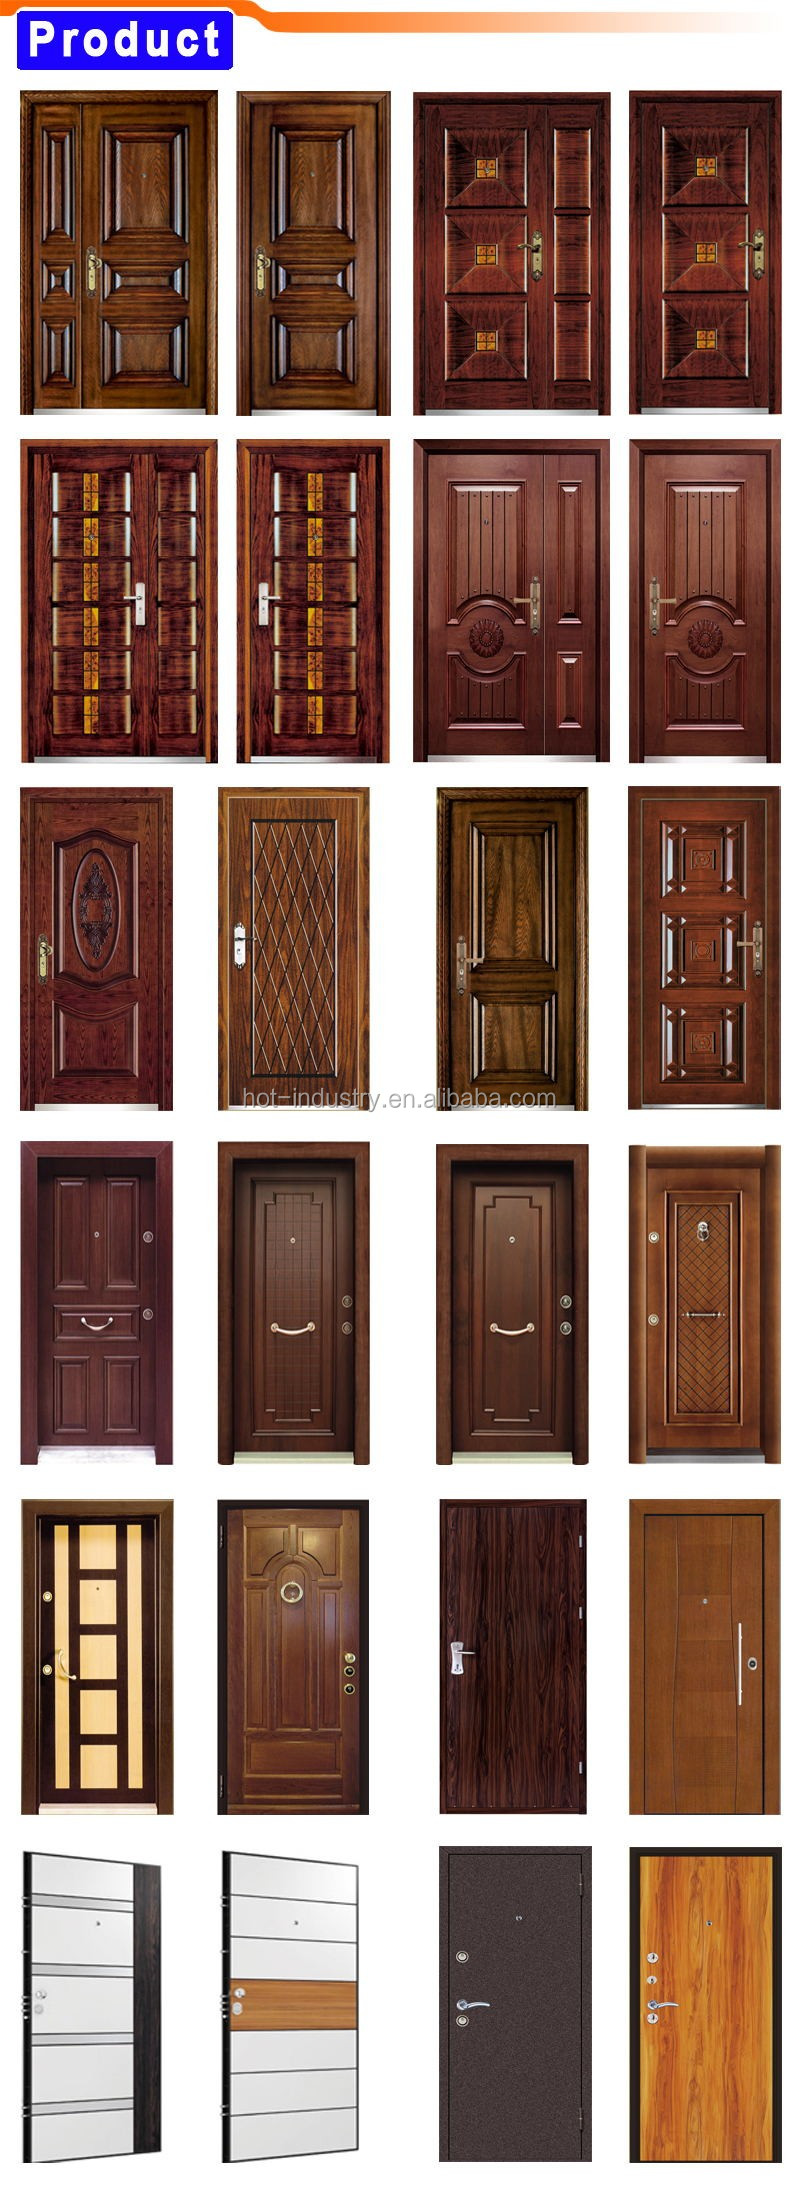 Front Armored Door Inspirations Soundproof Apartment Beautiful High Security Quality